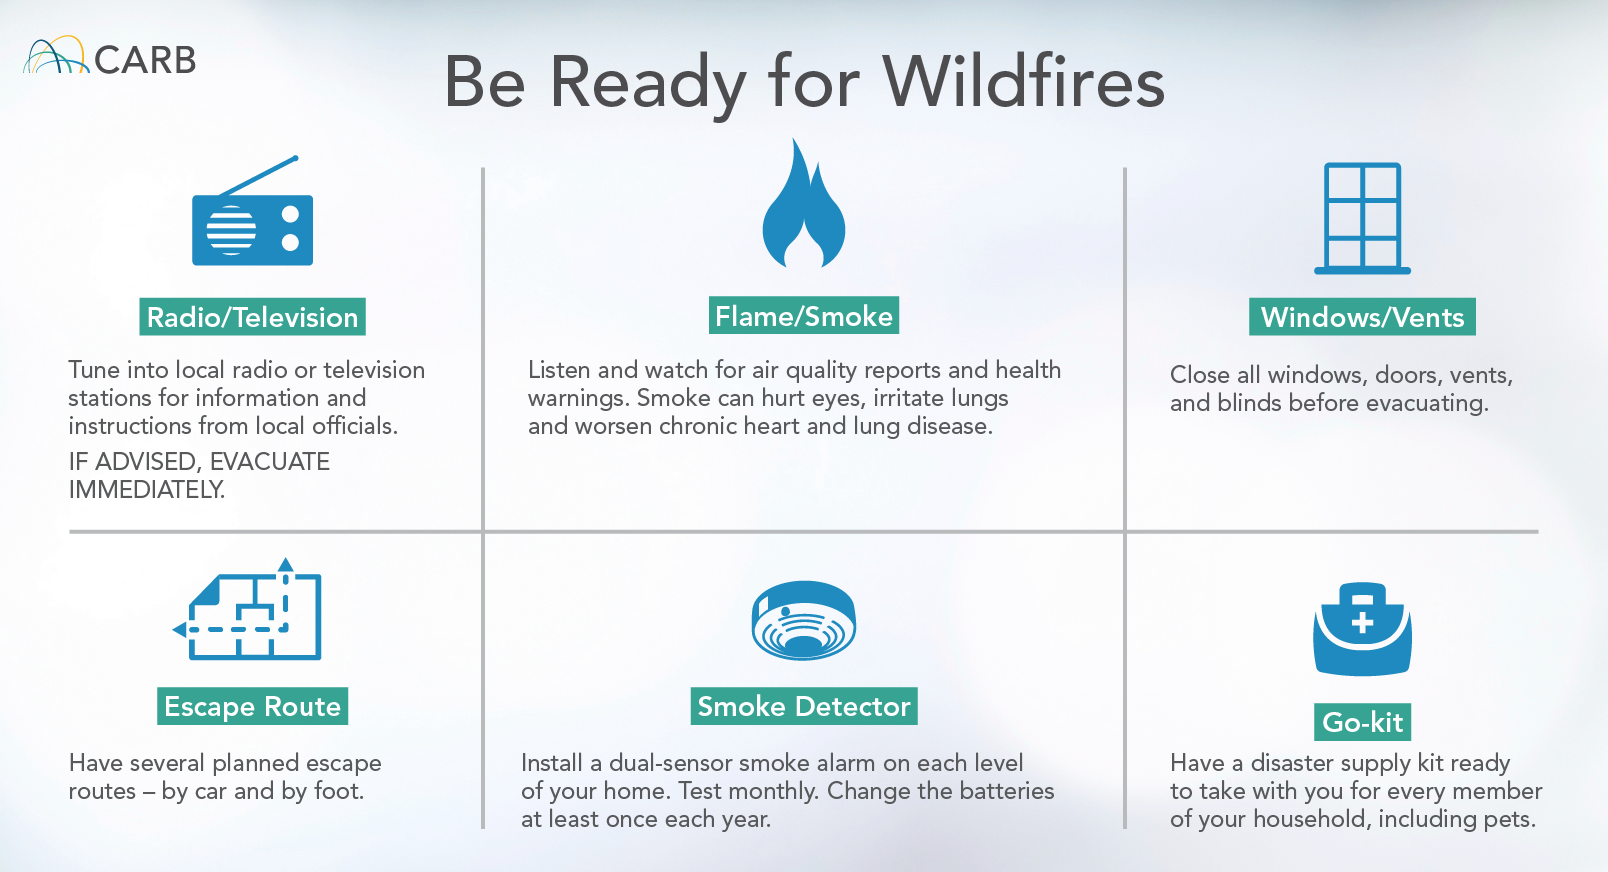 be ready for wildfires